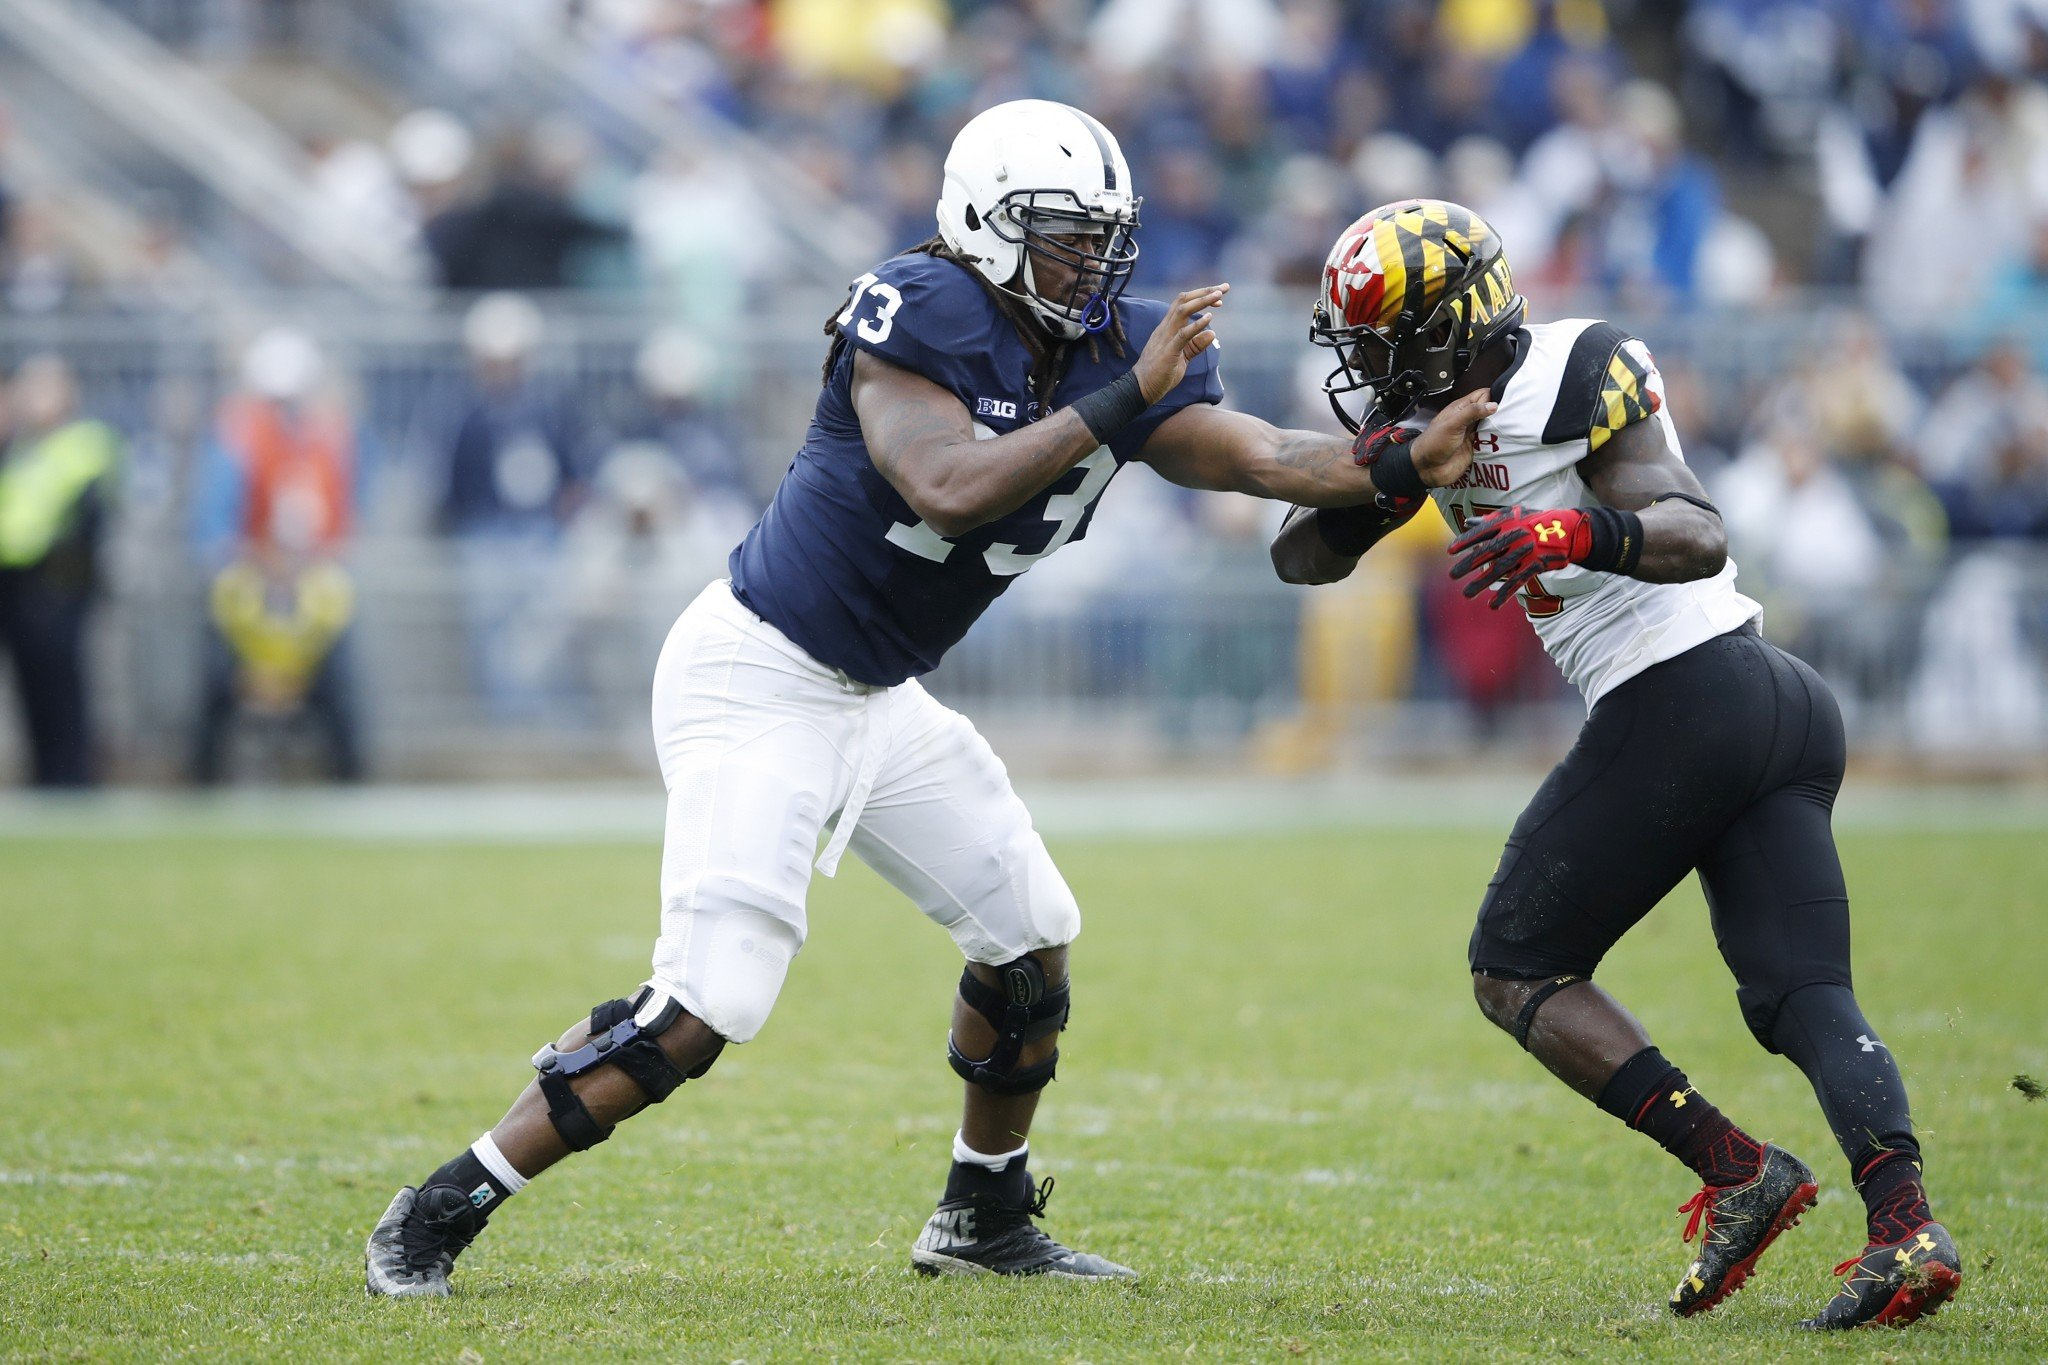 With Paris Palmer out for the season, Penn State is down to its fourth and fifth offensive tackles. (Photo by Joe Robbins/Getty Images)